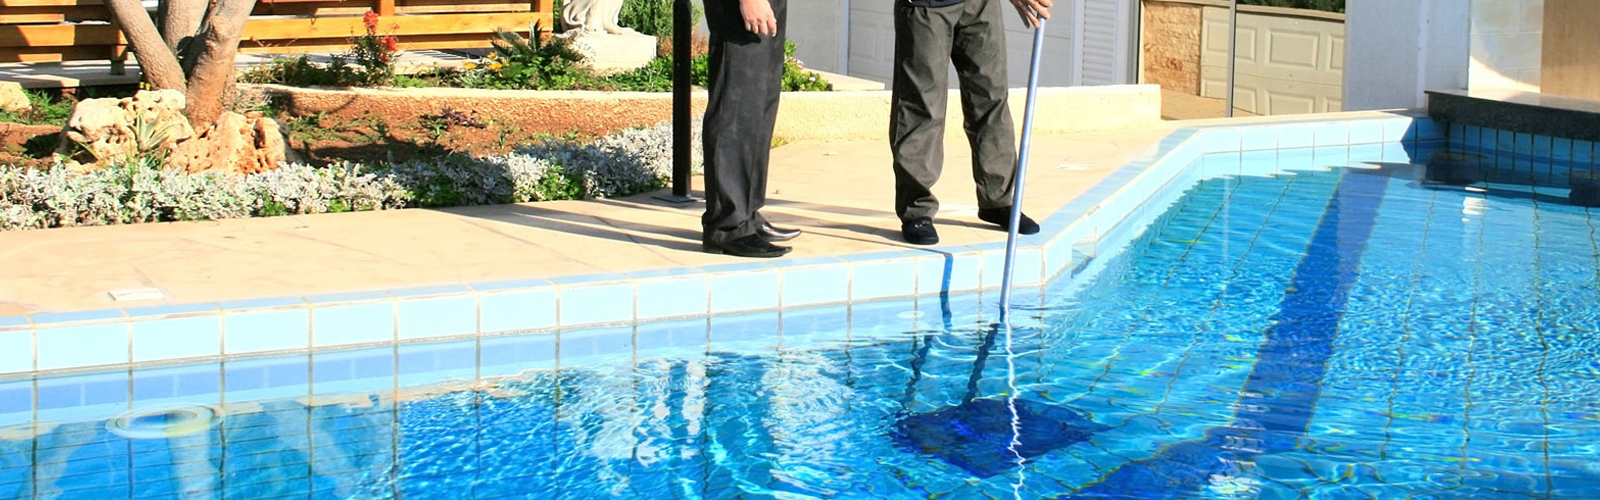 Dallas Pool Service